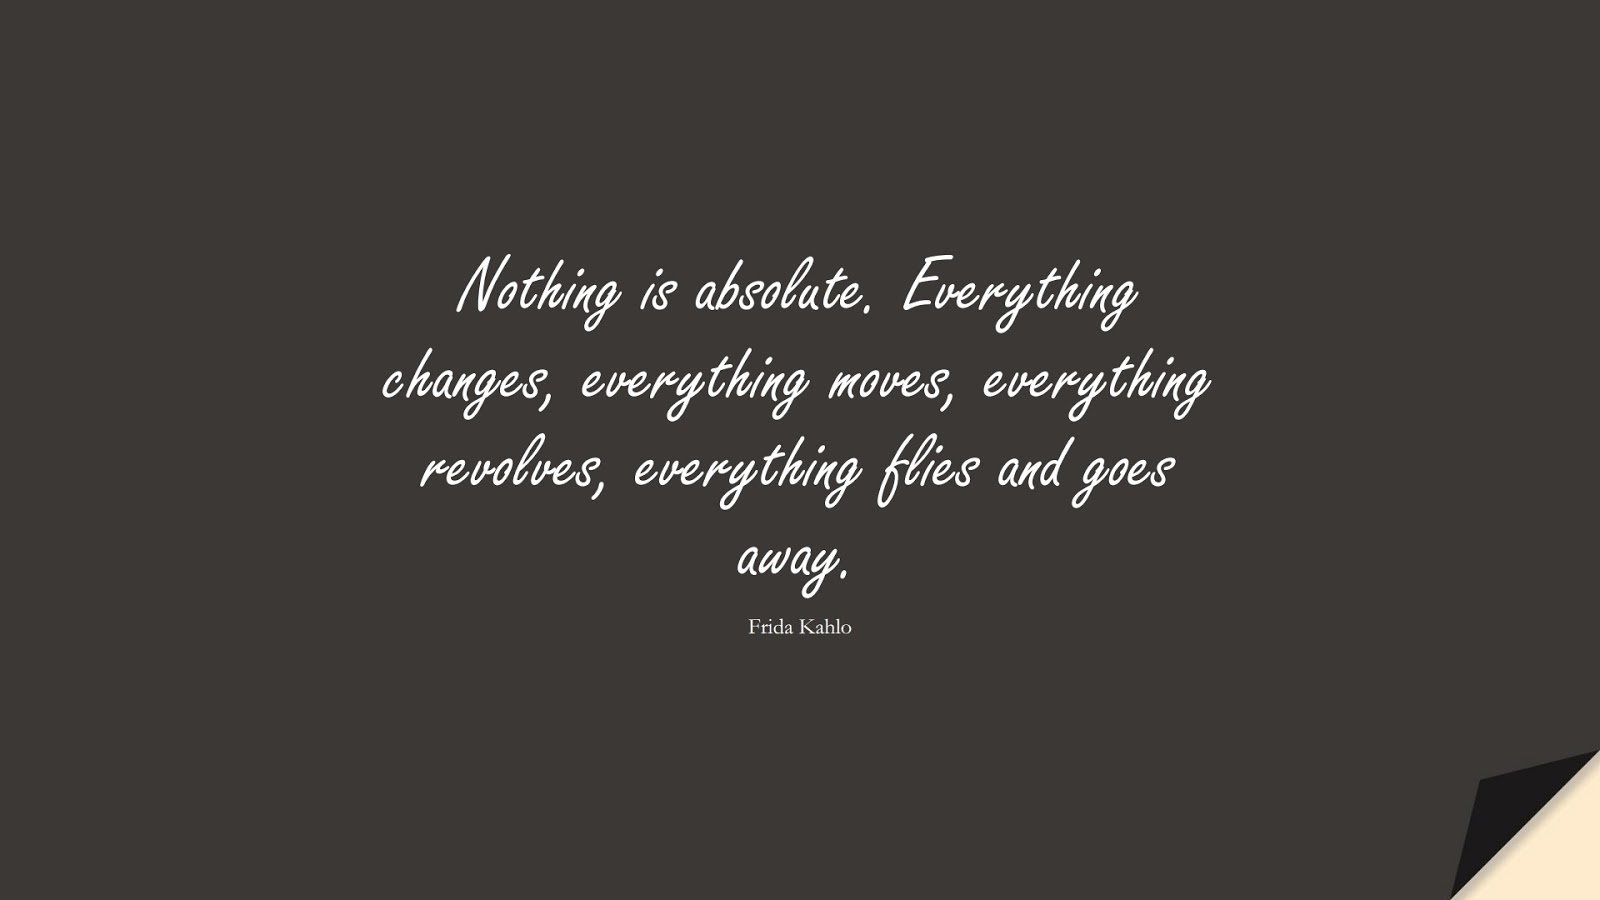 Nothing is absolute. Everything changes, everything moves, everything revolves, everything flies and goes away. (Frida Kahlo);  #ChangeQuotes